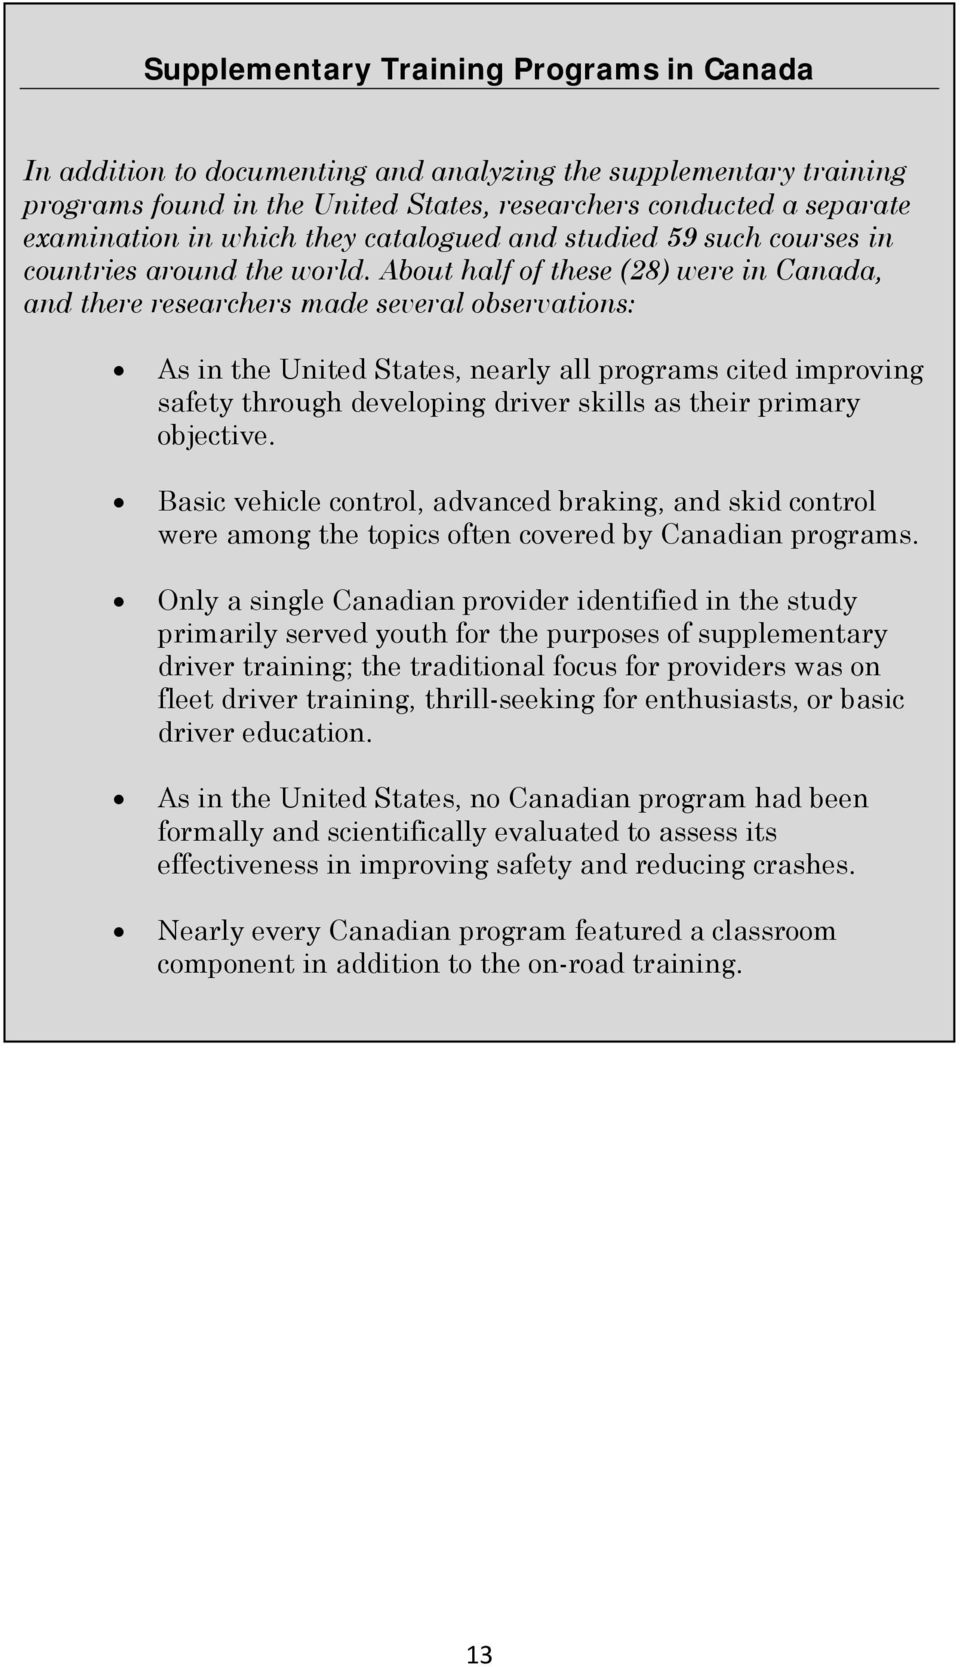 About half of these (28) were in Canada, and there researchers made several observations: As in the United States, nearly all programs cited improving safety through developing driver skills as their